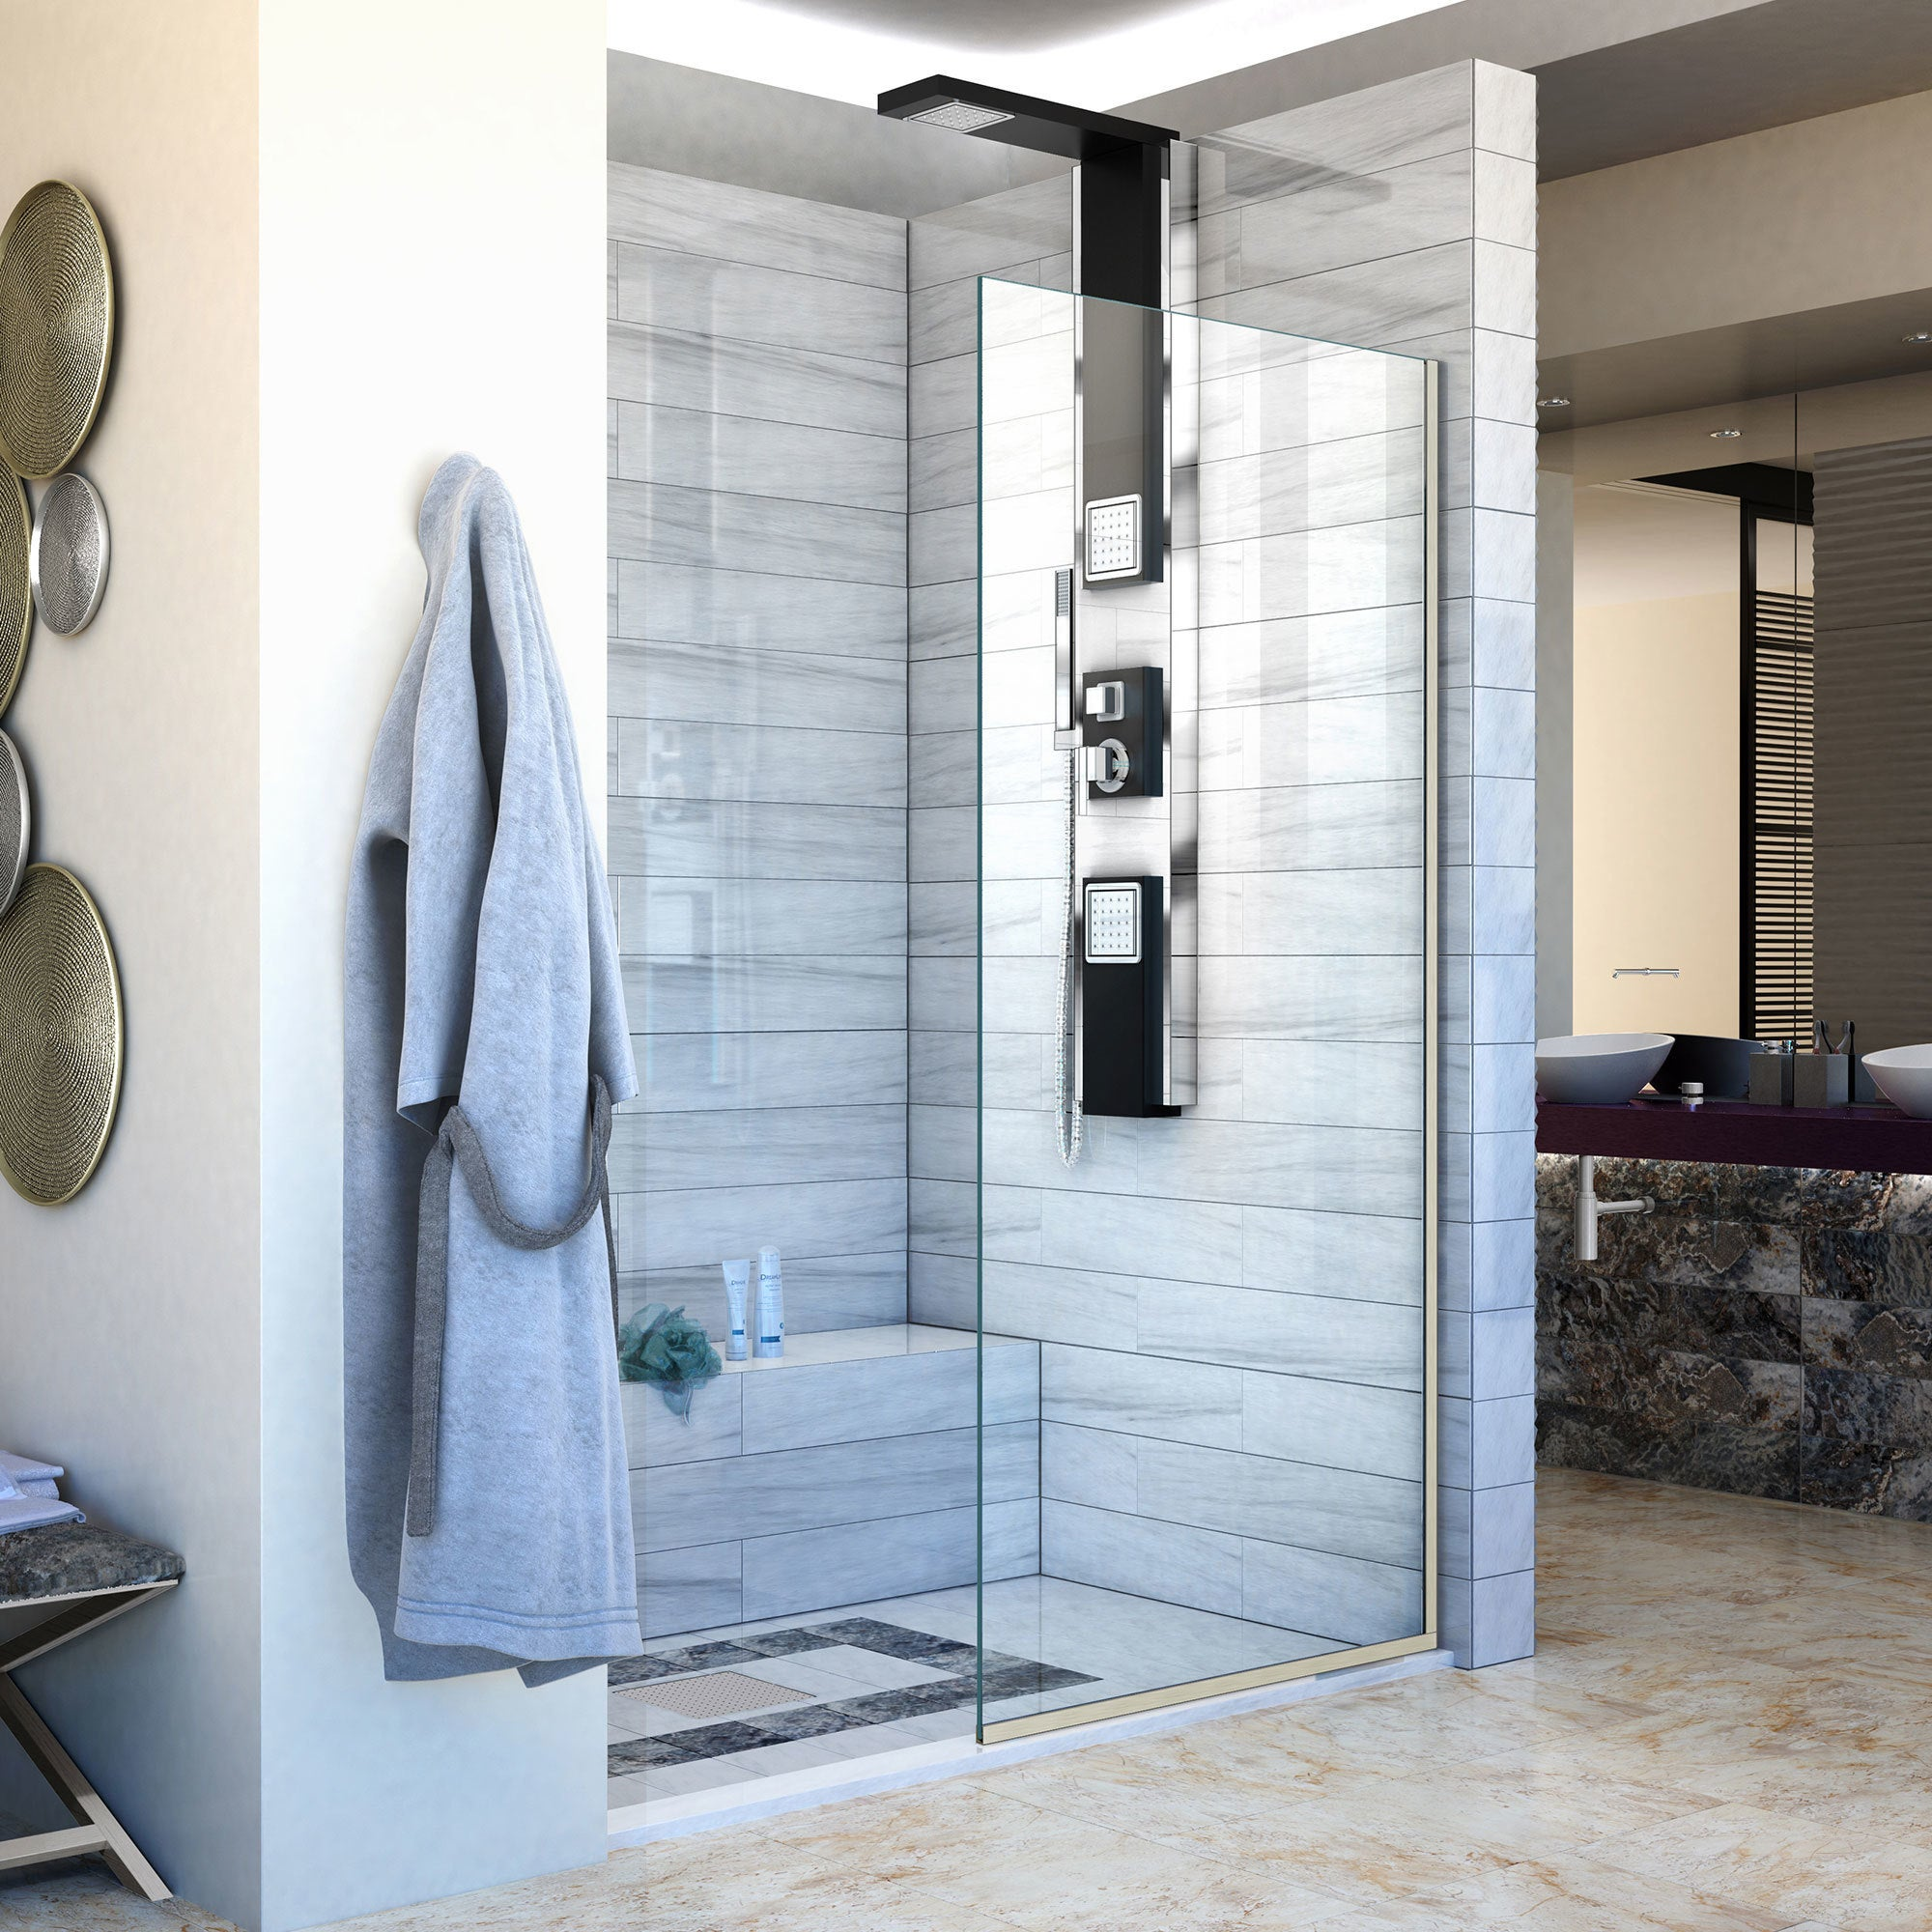 Dreamline Linea Single Panel Frameless Shower Screen 34 In W X 72 In H 34 W